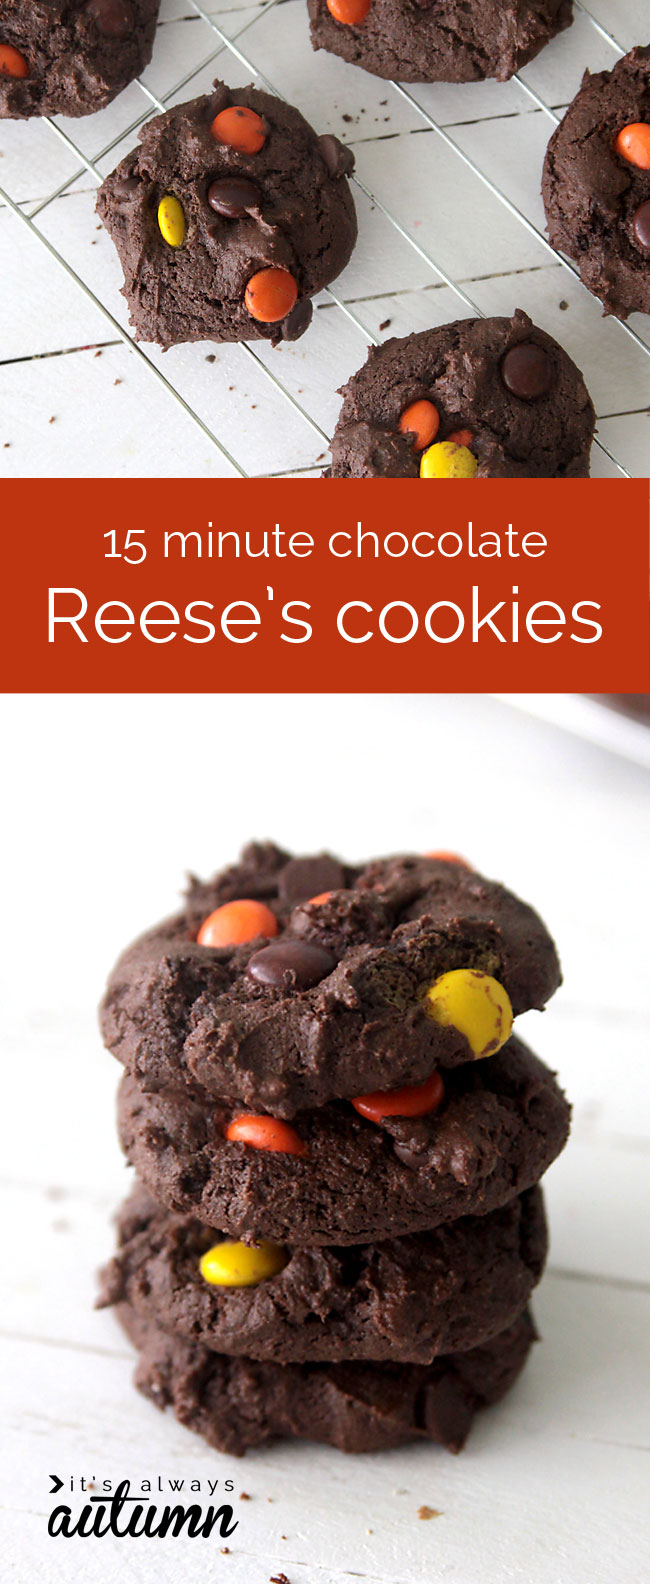 these chocolate reese's cookies are crazy delicious and only take 15 minutes to make!